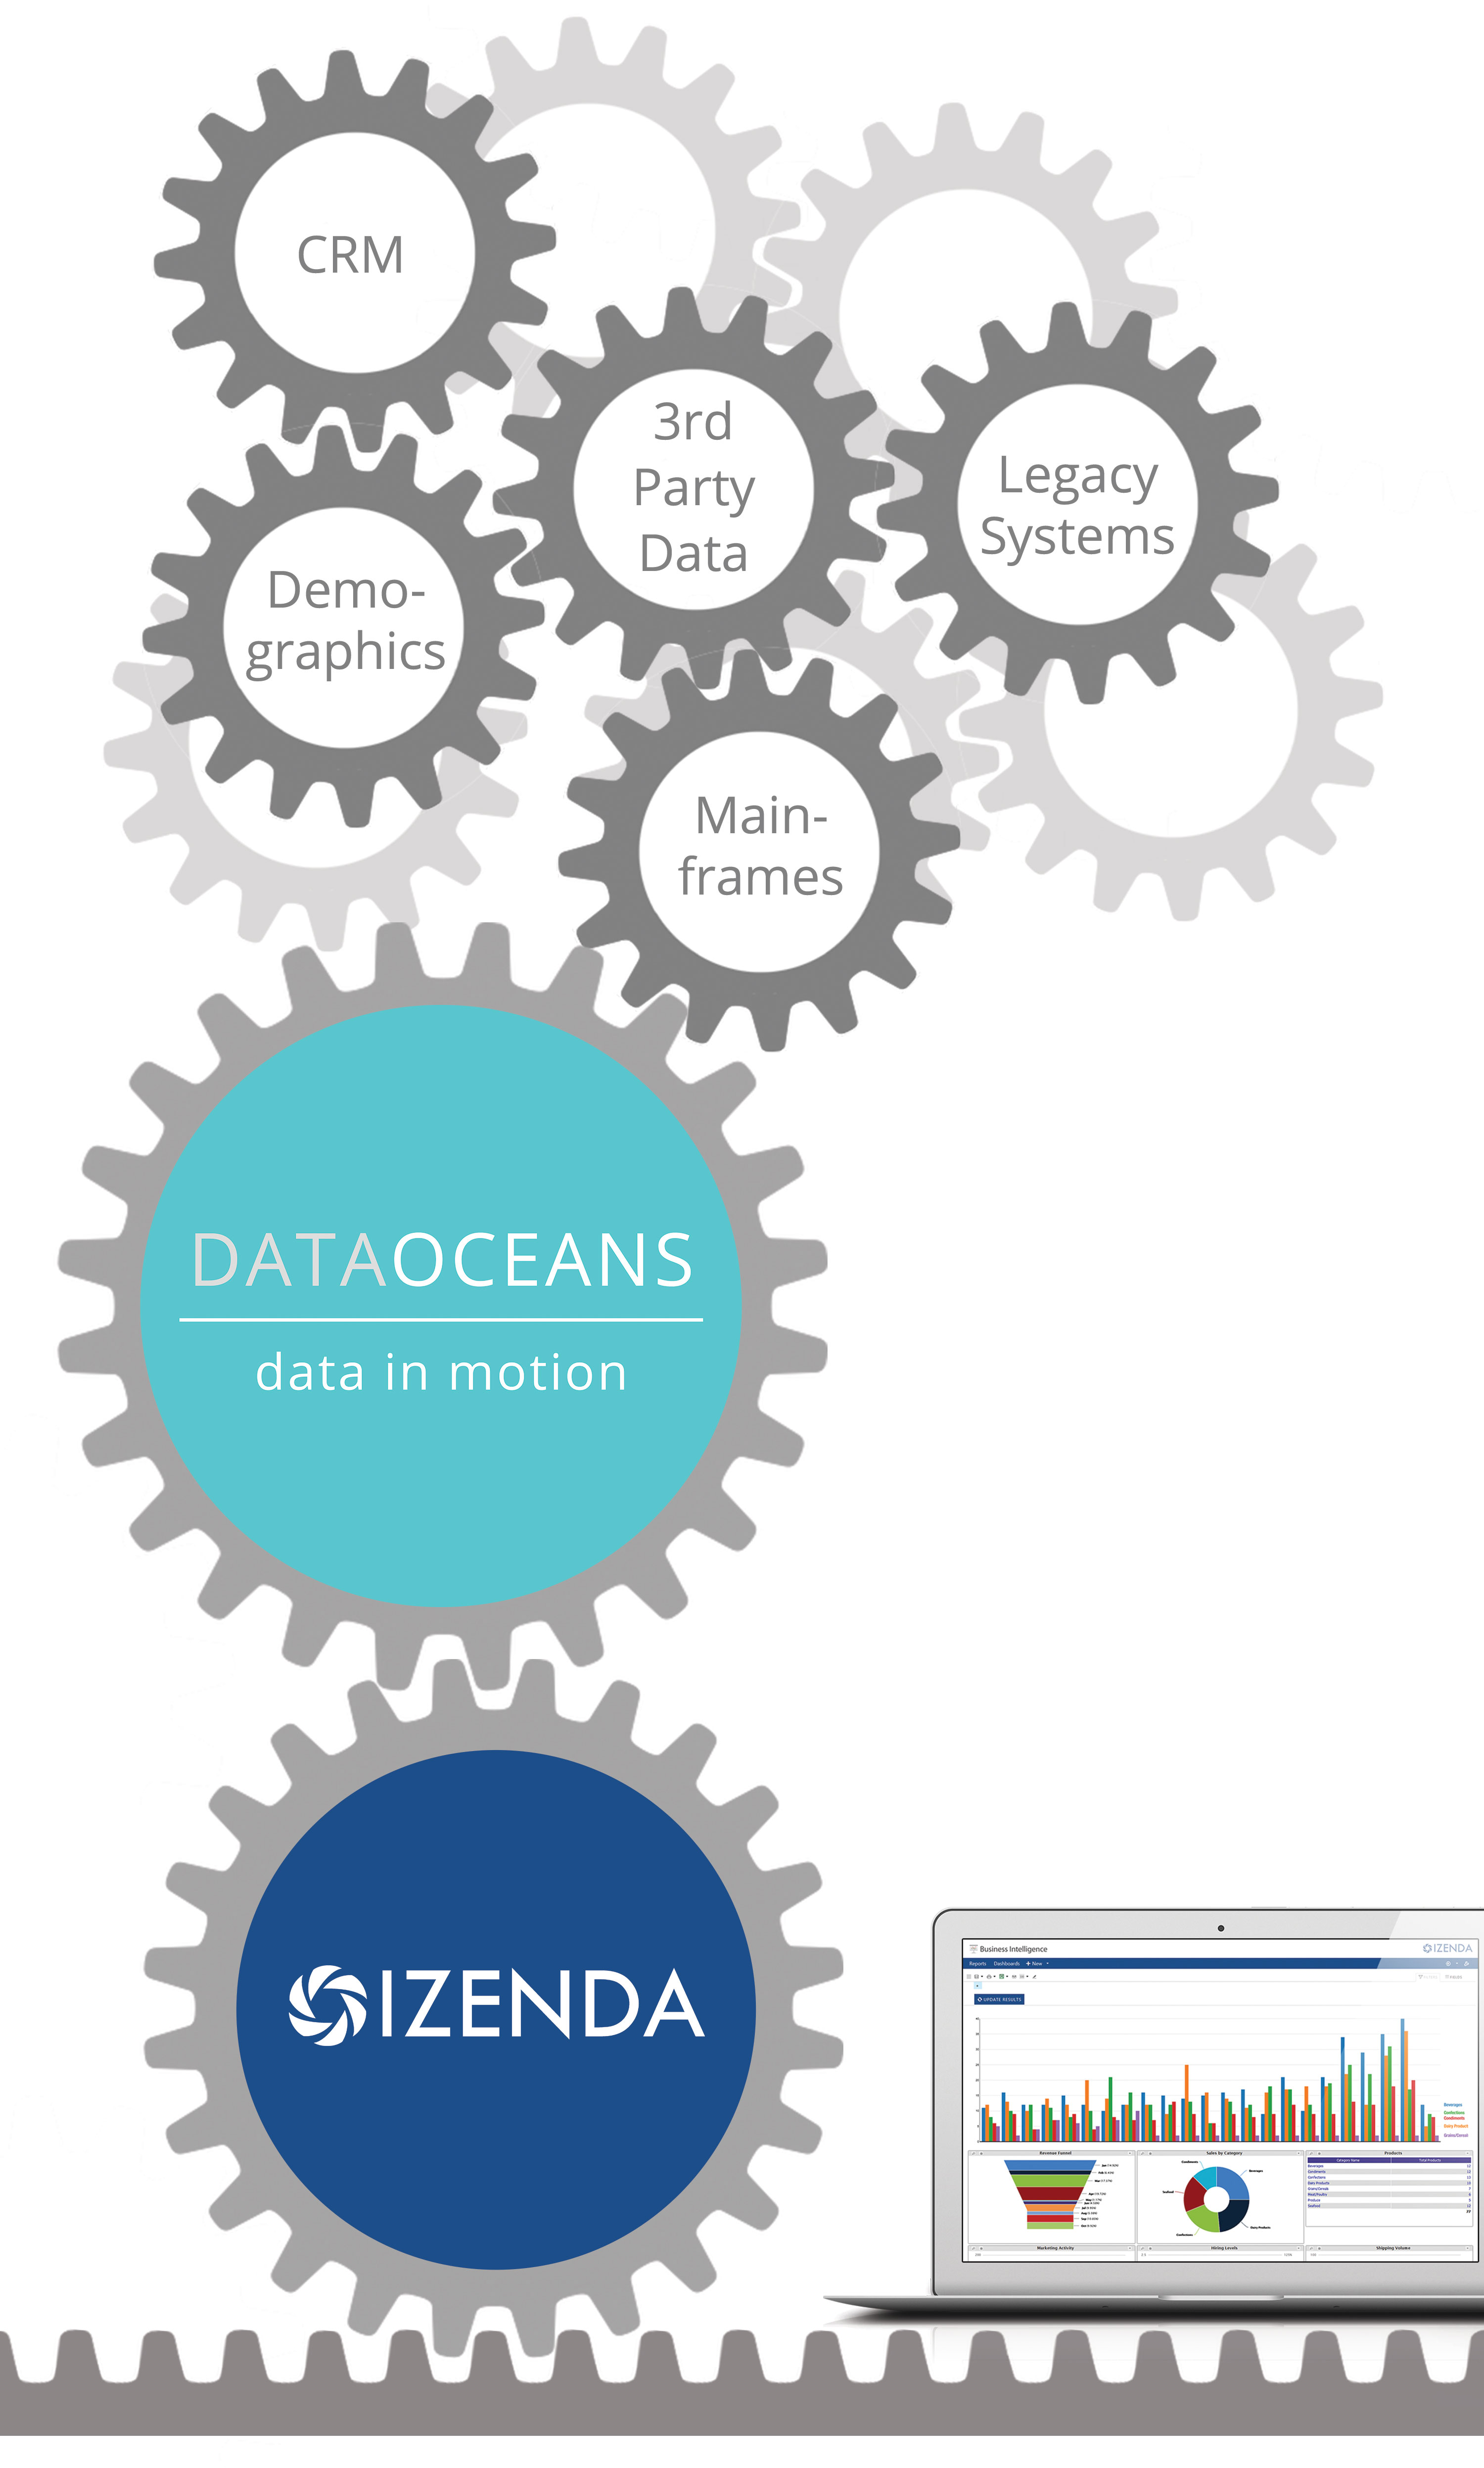 DataOceans can connect various sources of data - legacy systems, CRM and third party - with Izenda BI